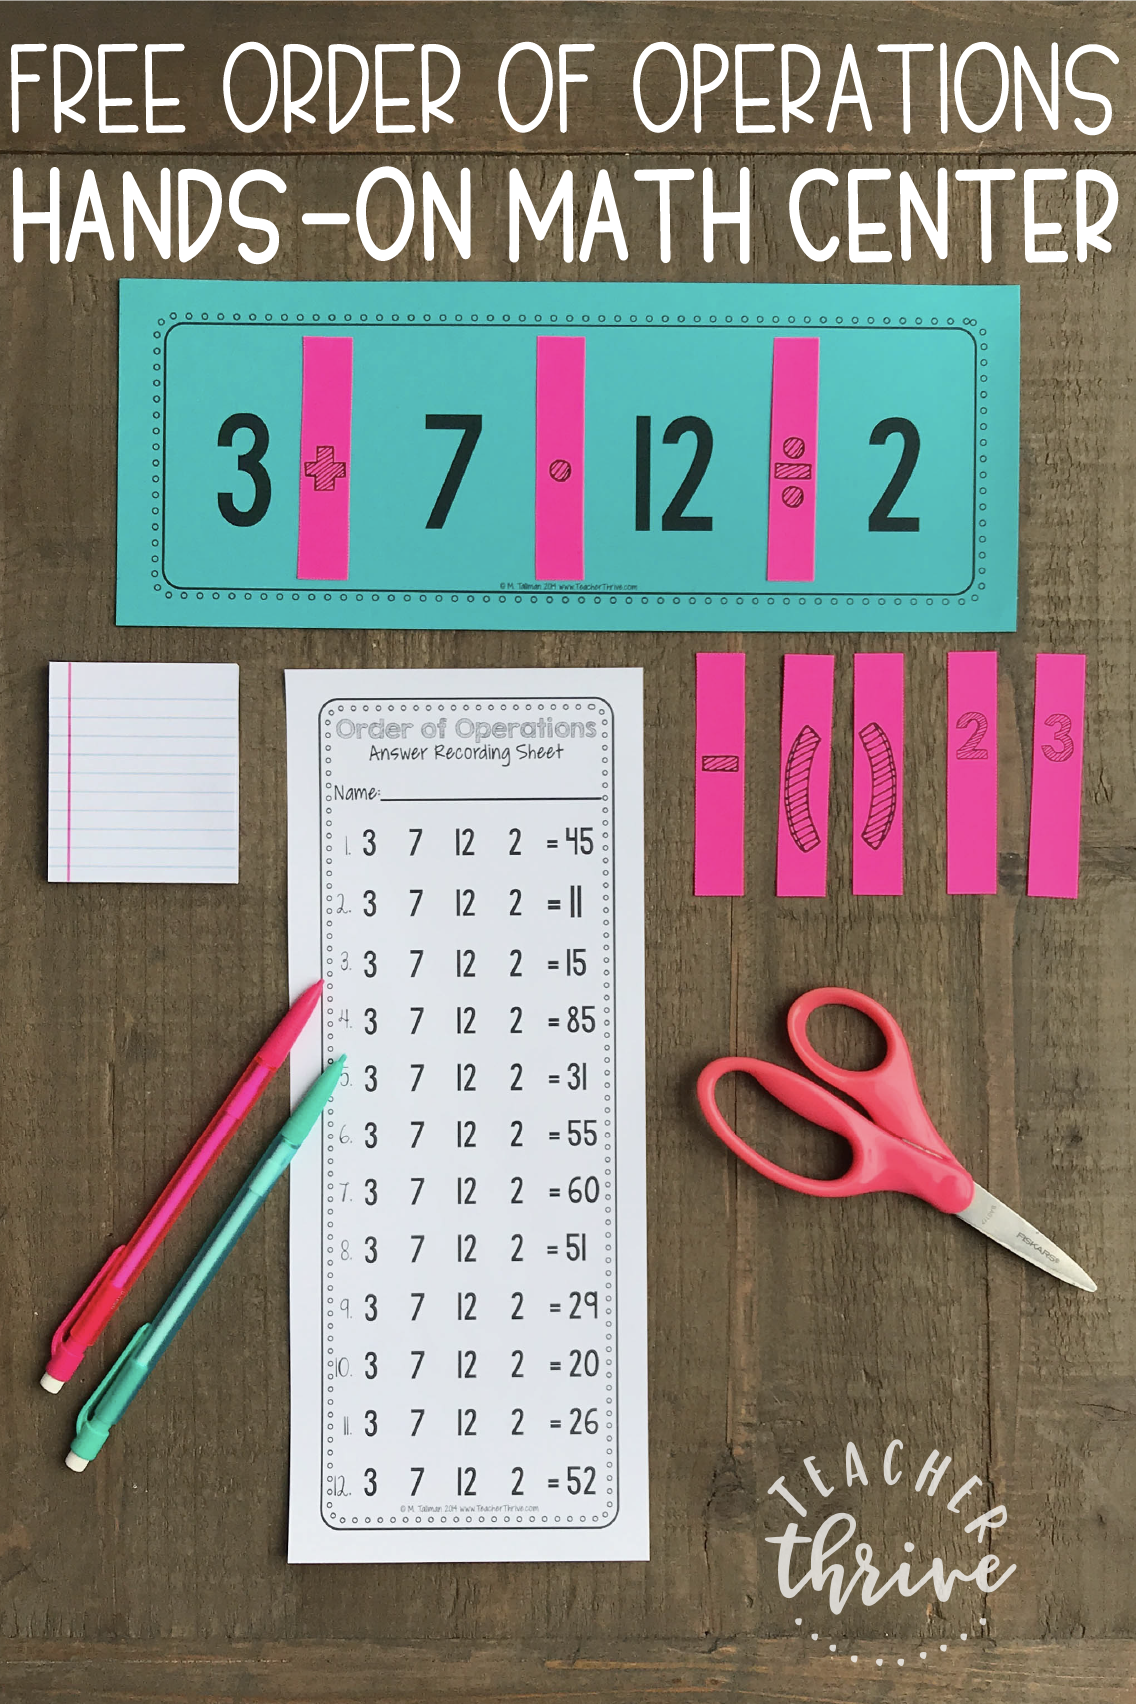 Free Order Of Operations Math Center